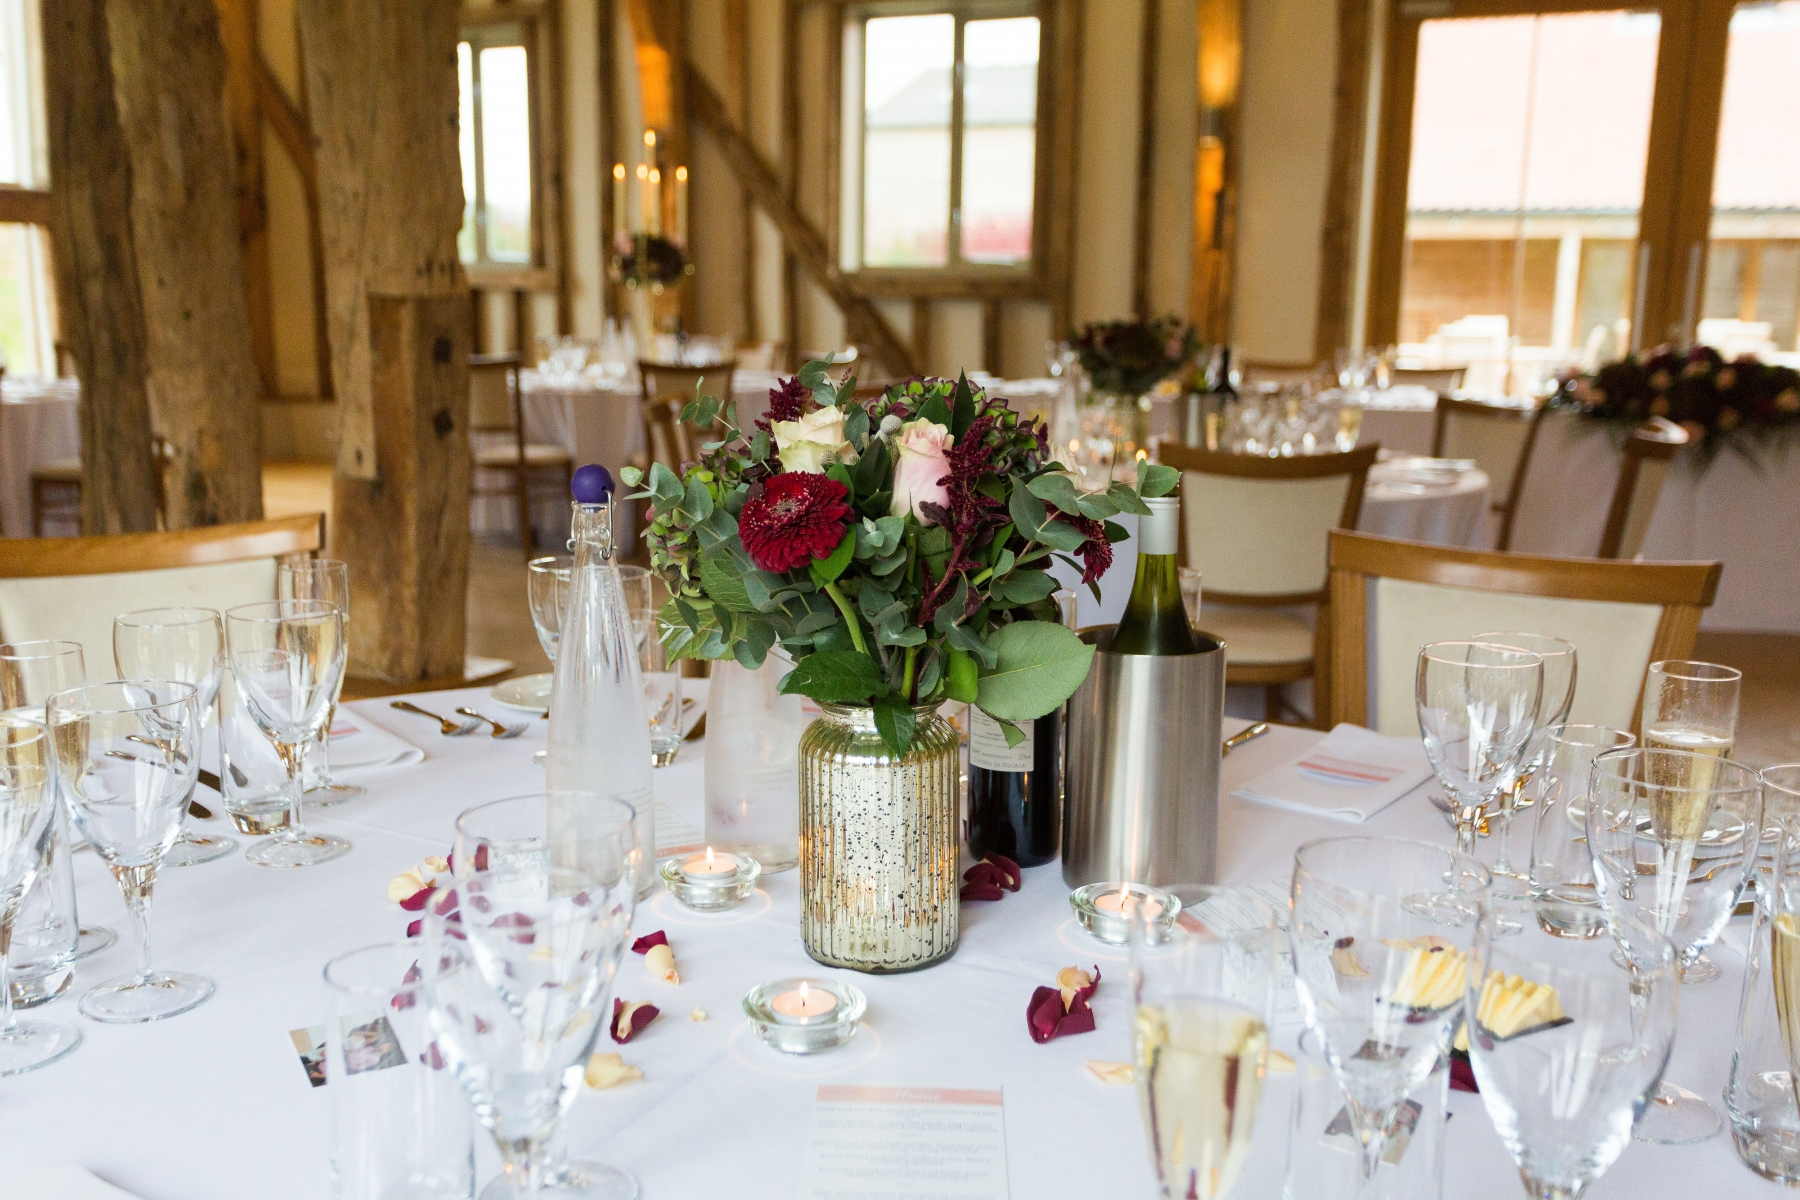 Suzi and Terry October 2017 - Low table arrangement